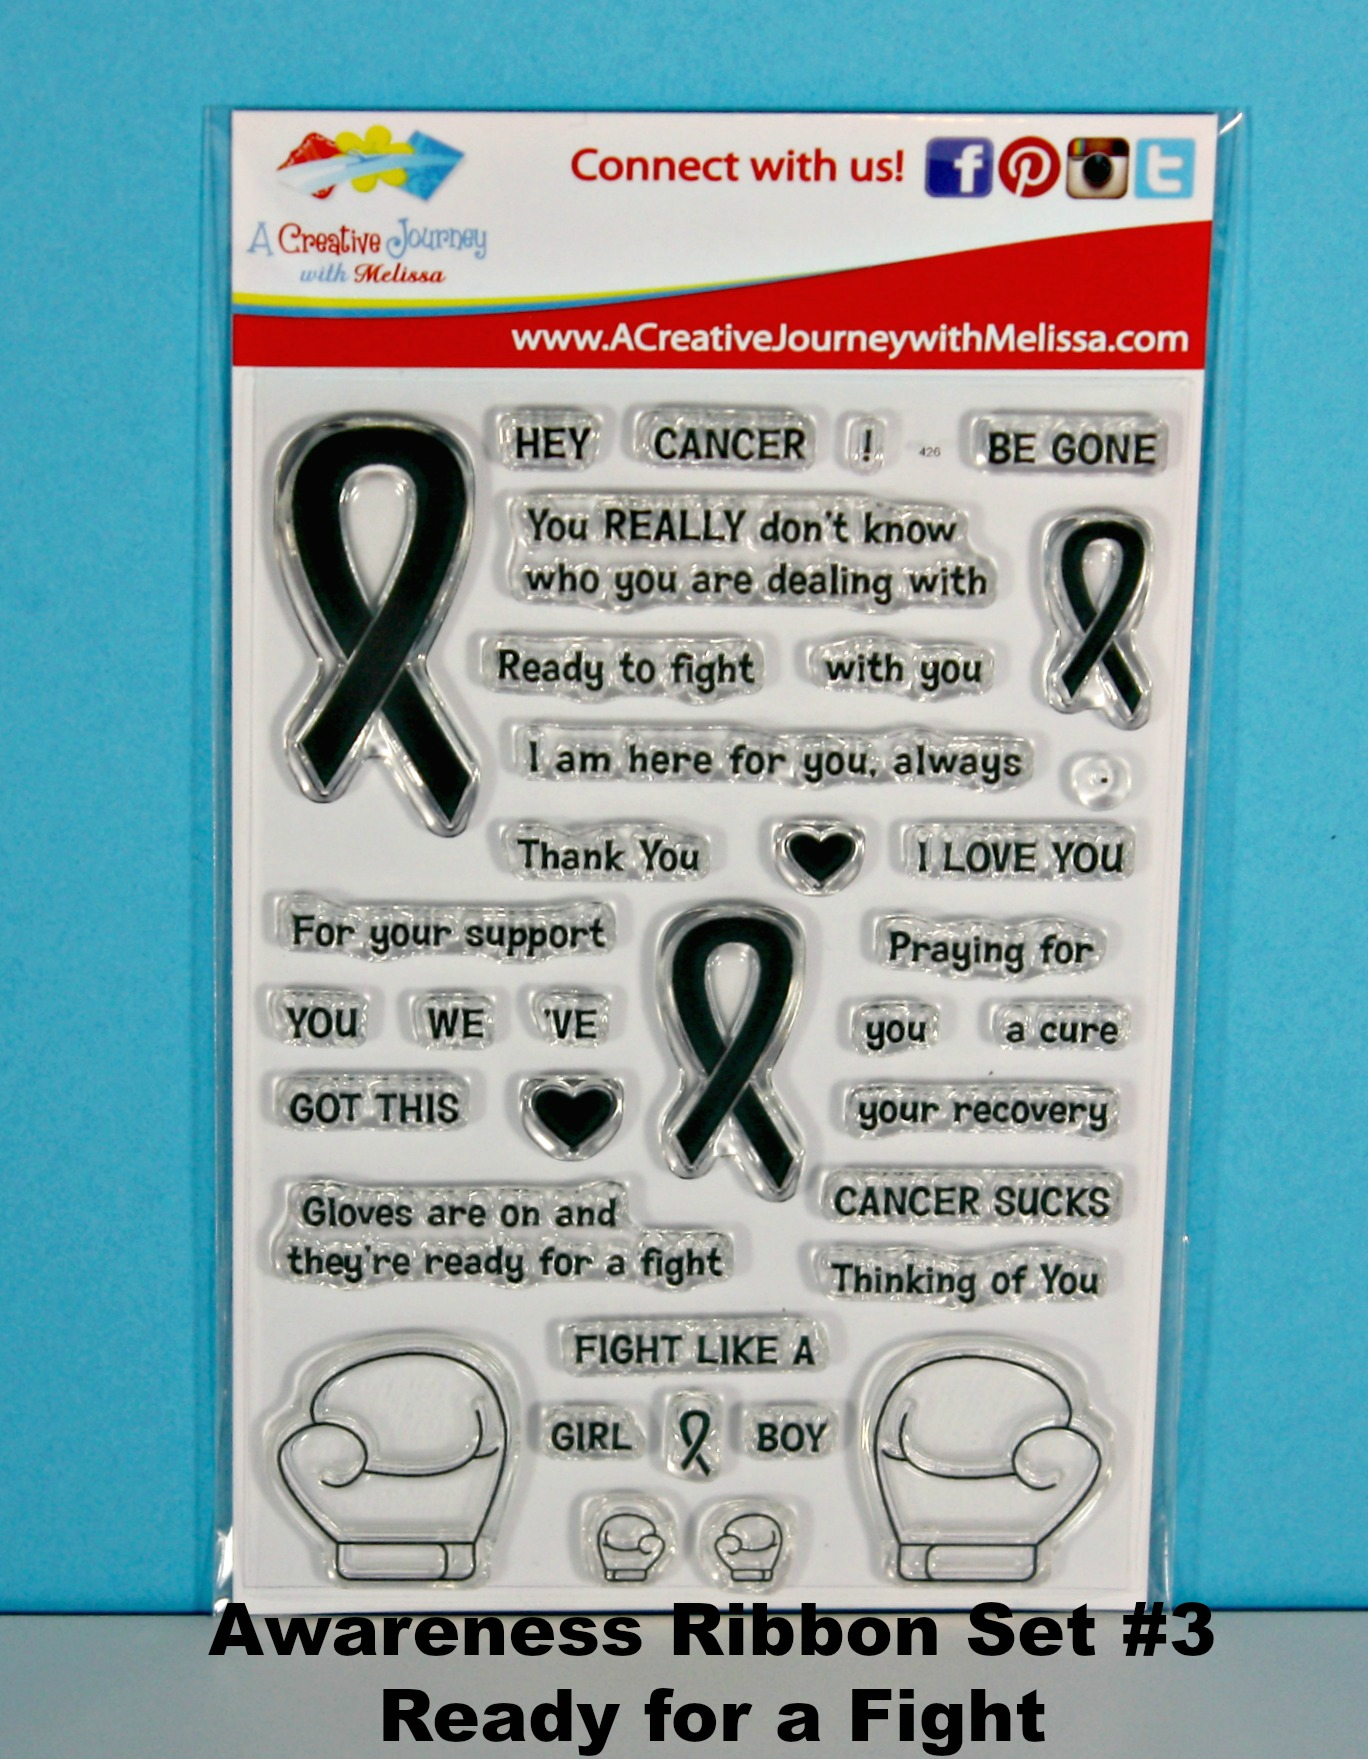 awareness-ribbon-set-3-ready-for-a-fight